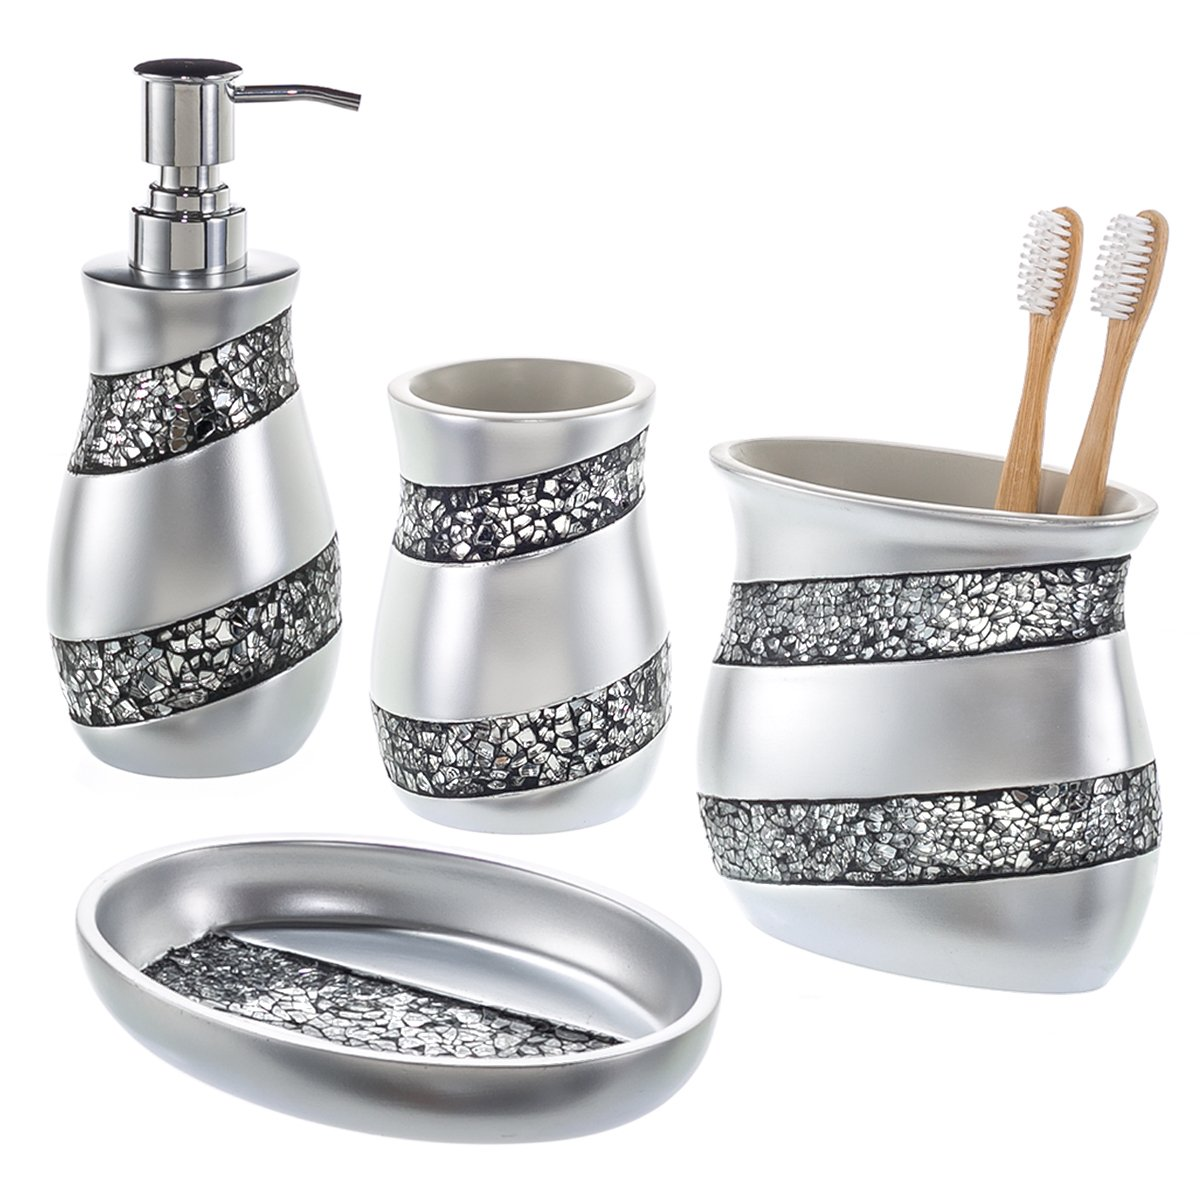 amazoncom creative scents bathroom accessories set 4 piece silver mosaic glass luxury bathroom gift set includes soap dispenser toothbrush holder - Bathroom Sets